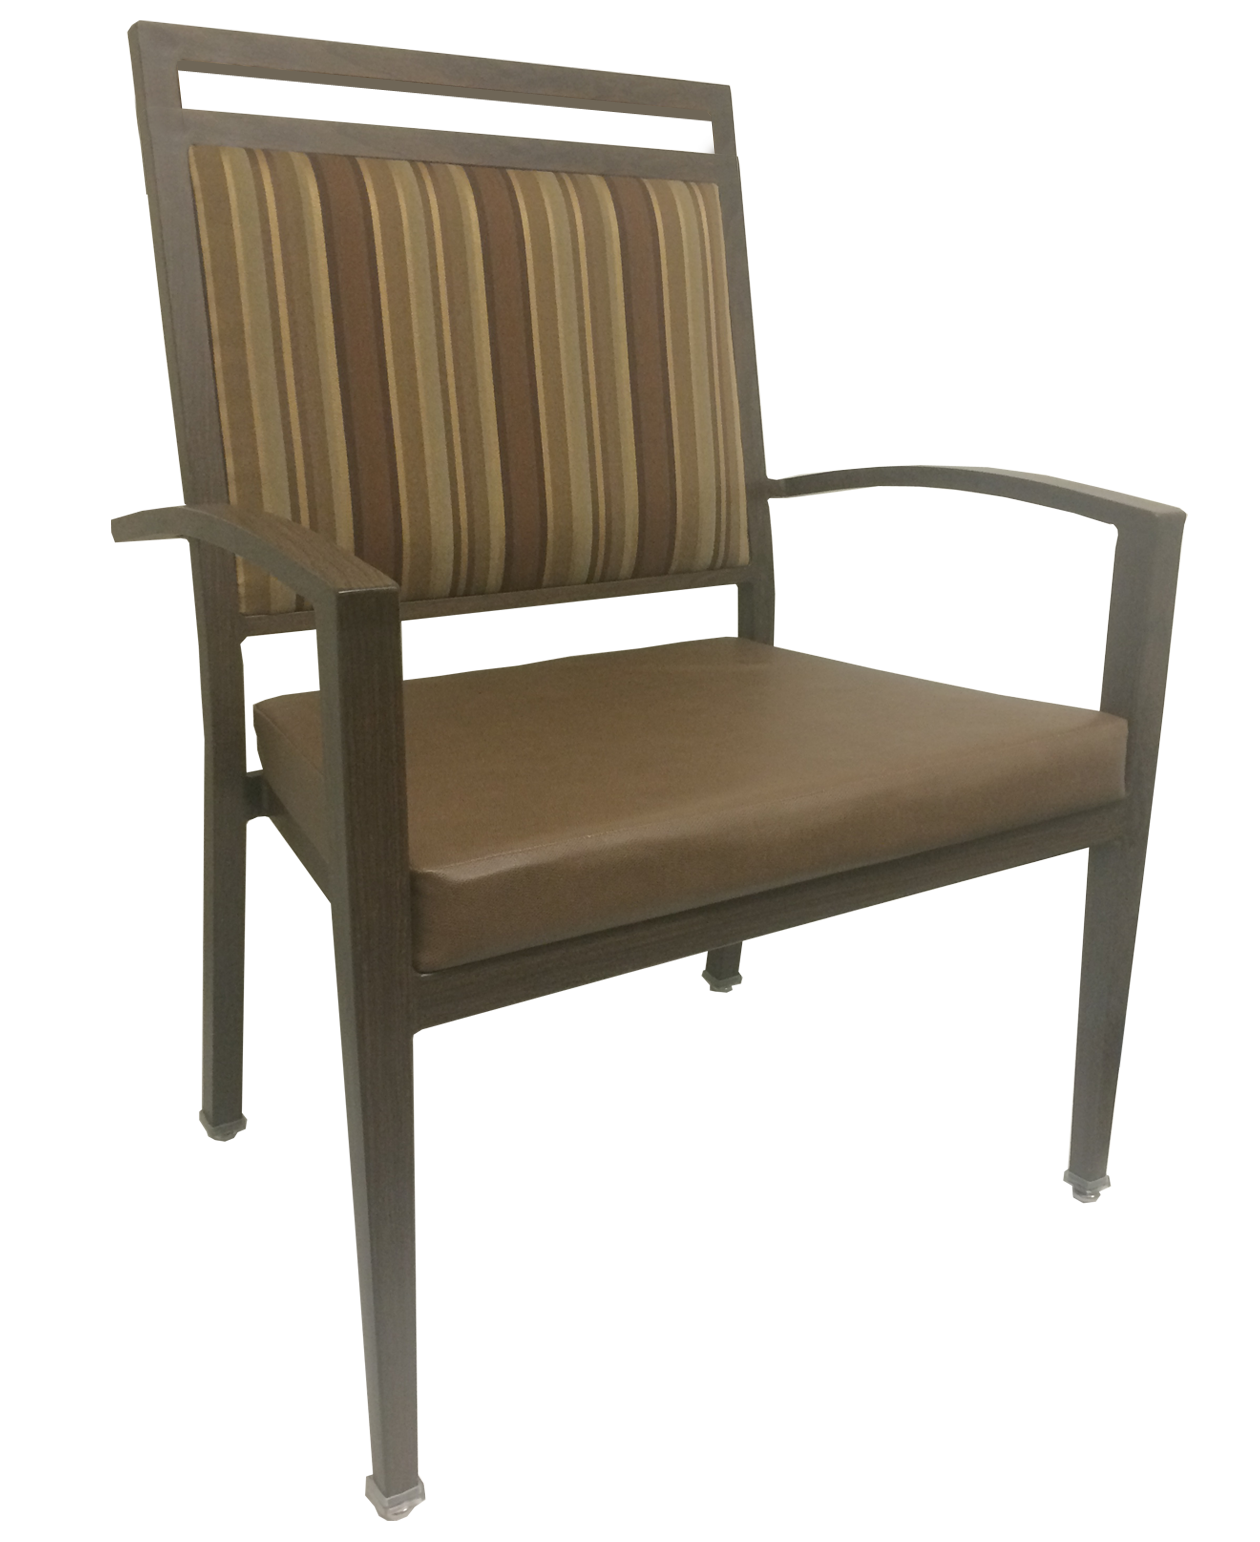 Aluminum Wood-Grain Bariatric Chairs